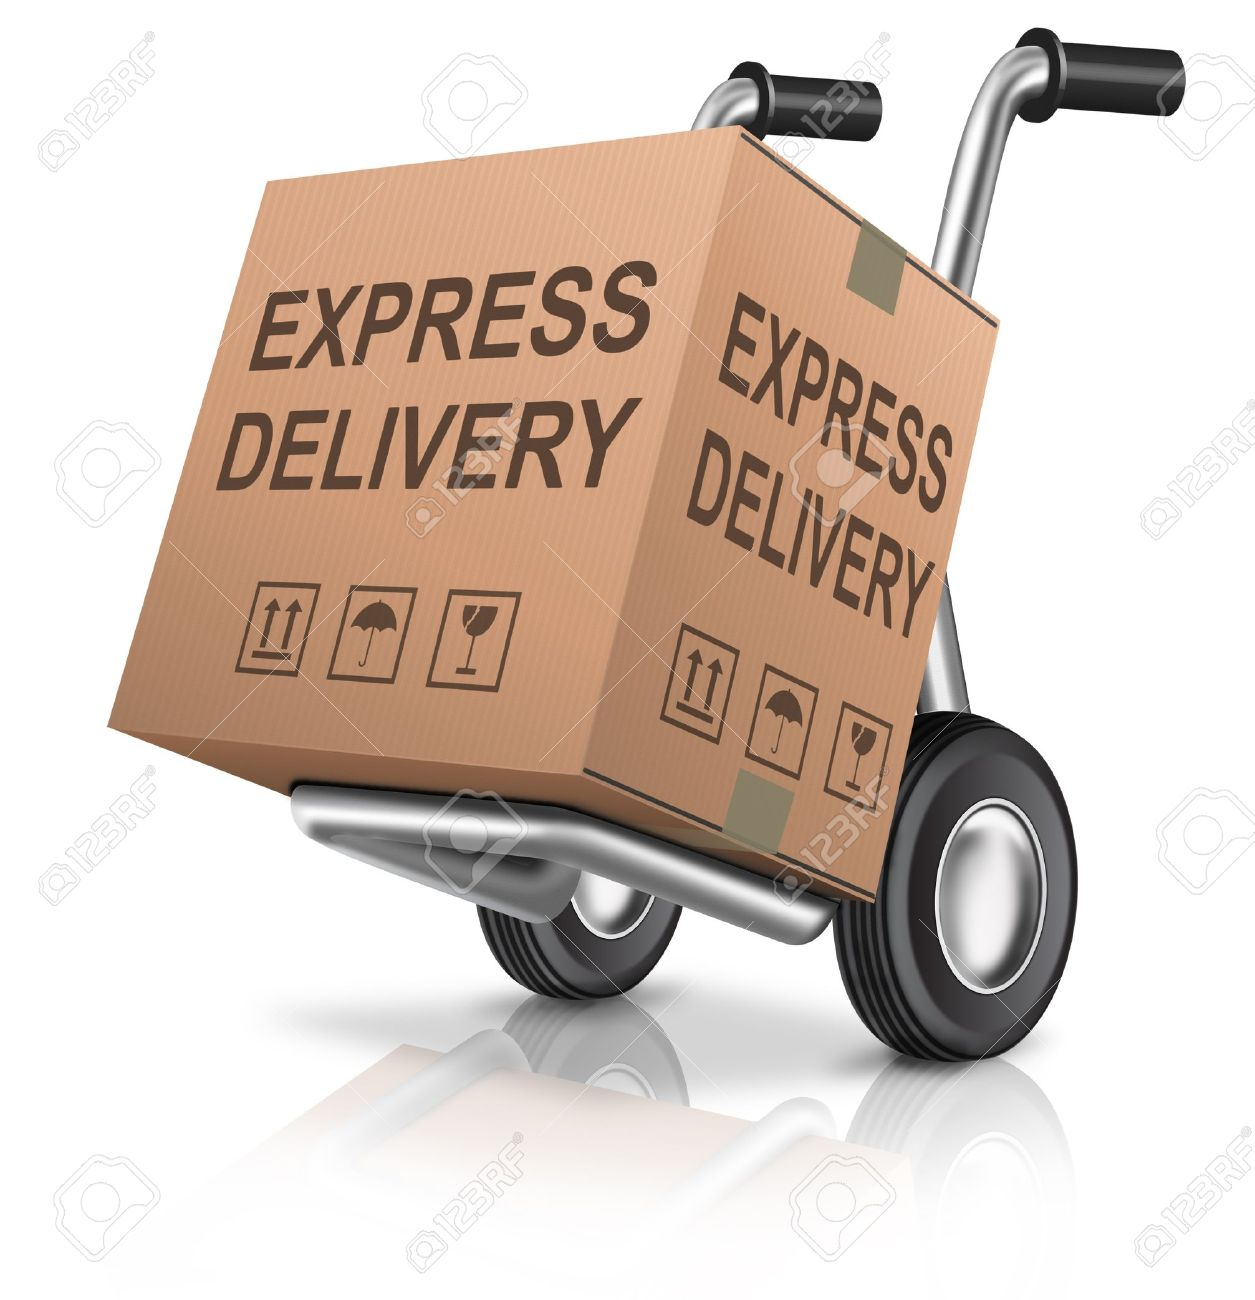 64eb236eba472 express delivery cardboard box on hand truck with text concept for order  shipping of online webshop